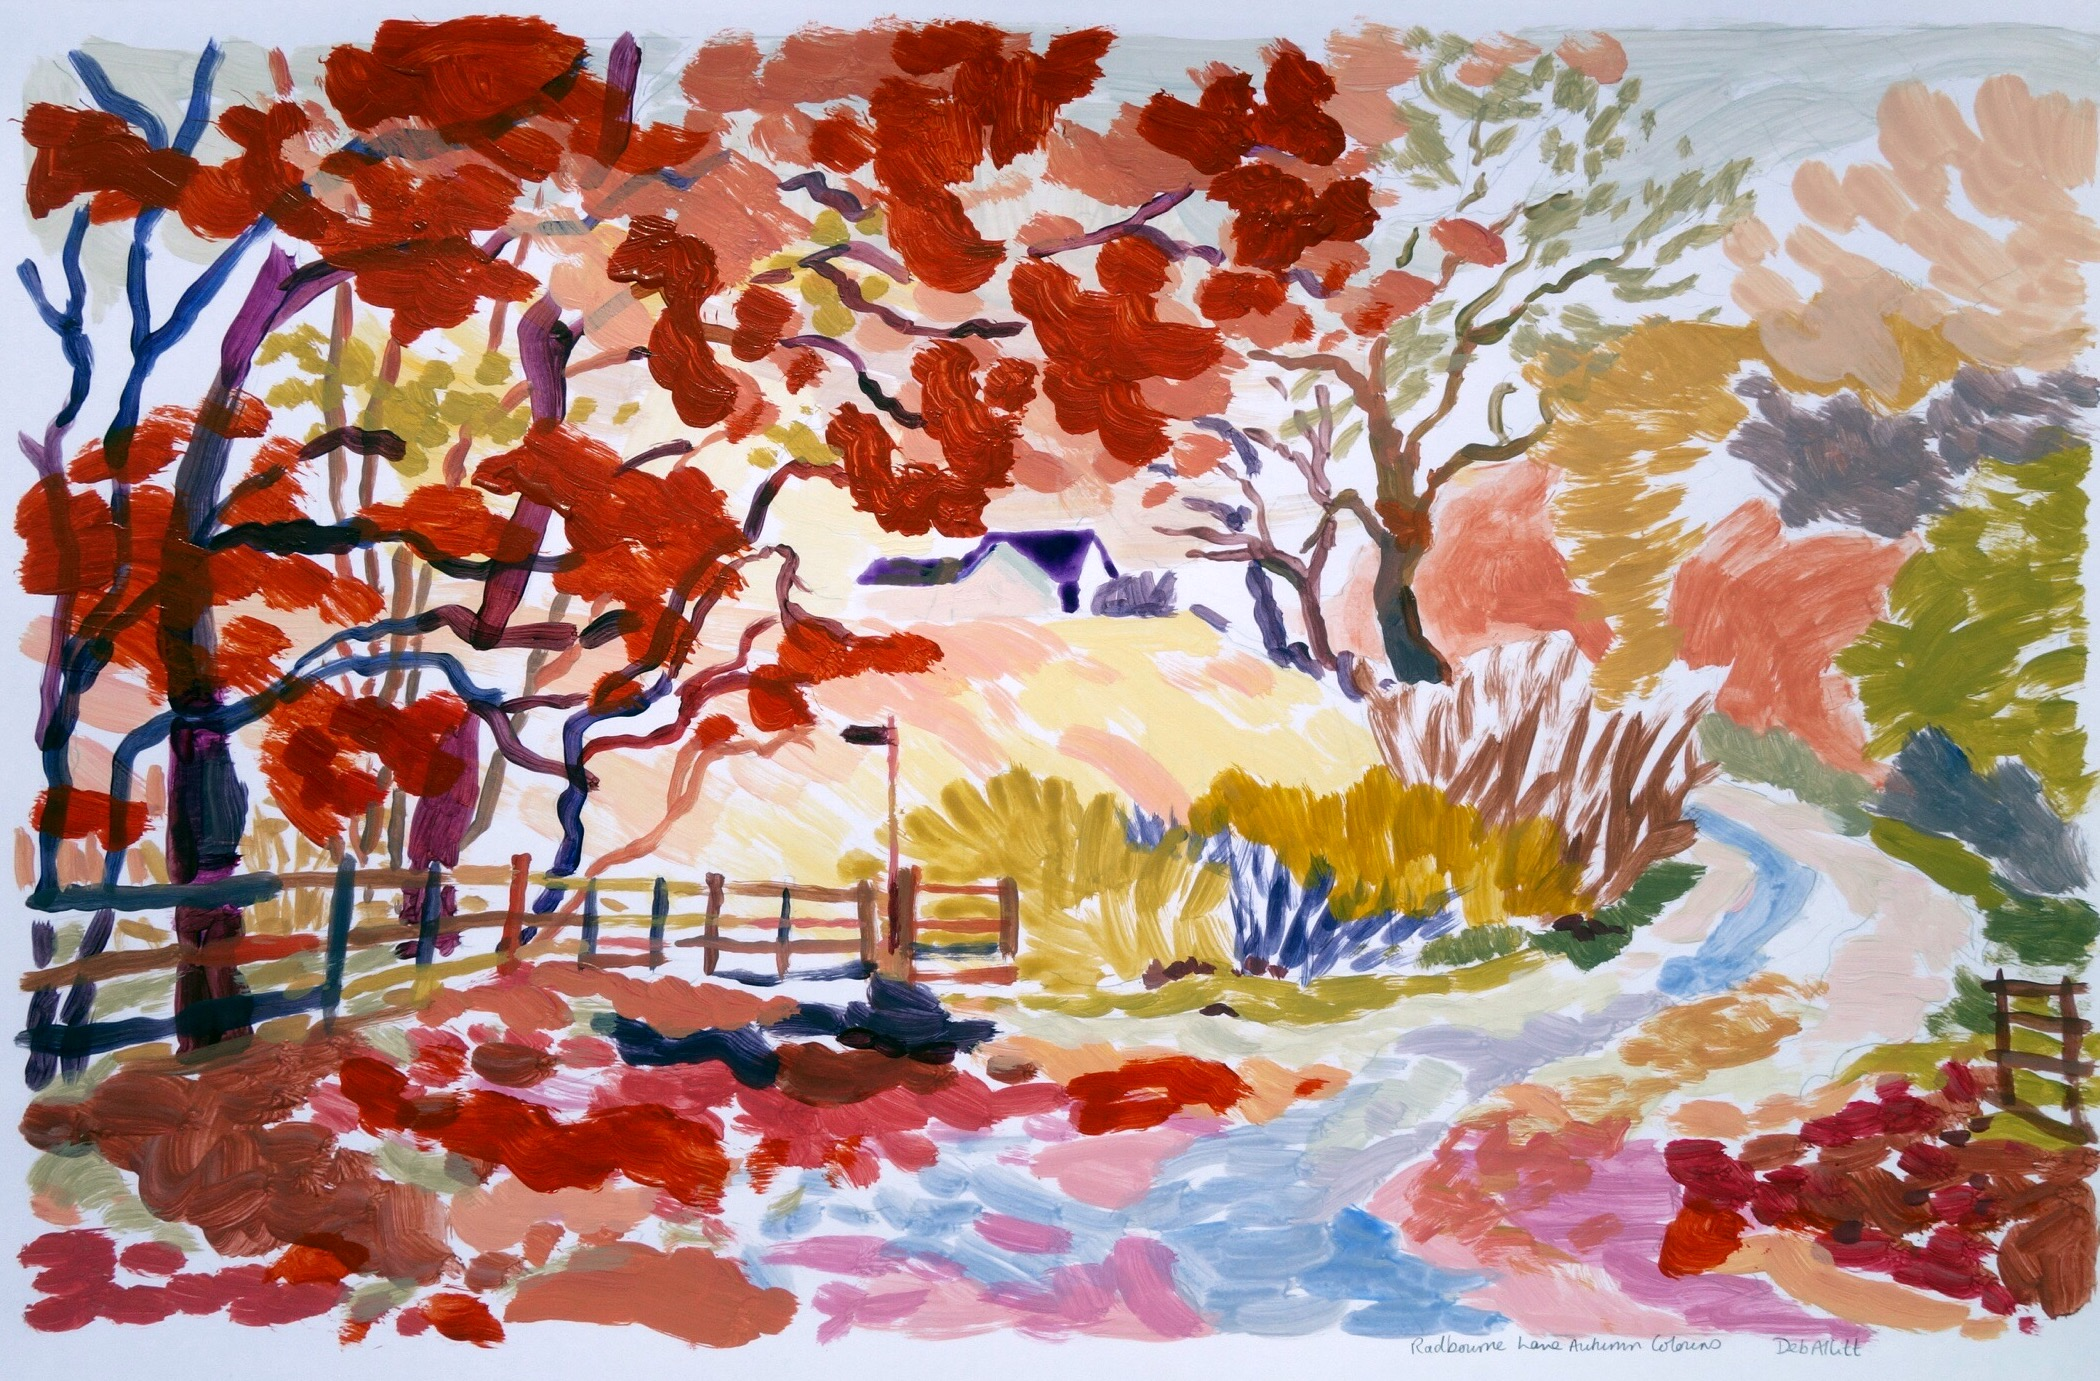 Autumn Colours in a Country Lane, Radbourne. Acrylic on paper. 29 x 41 cm.